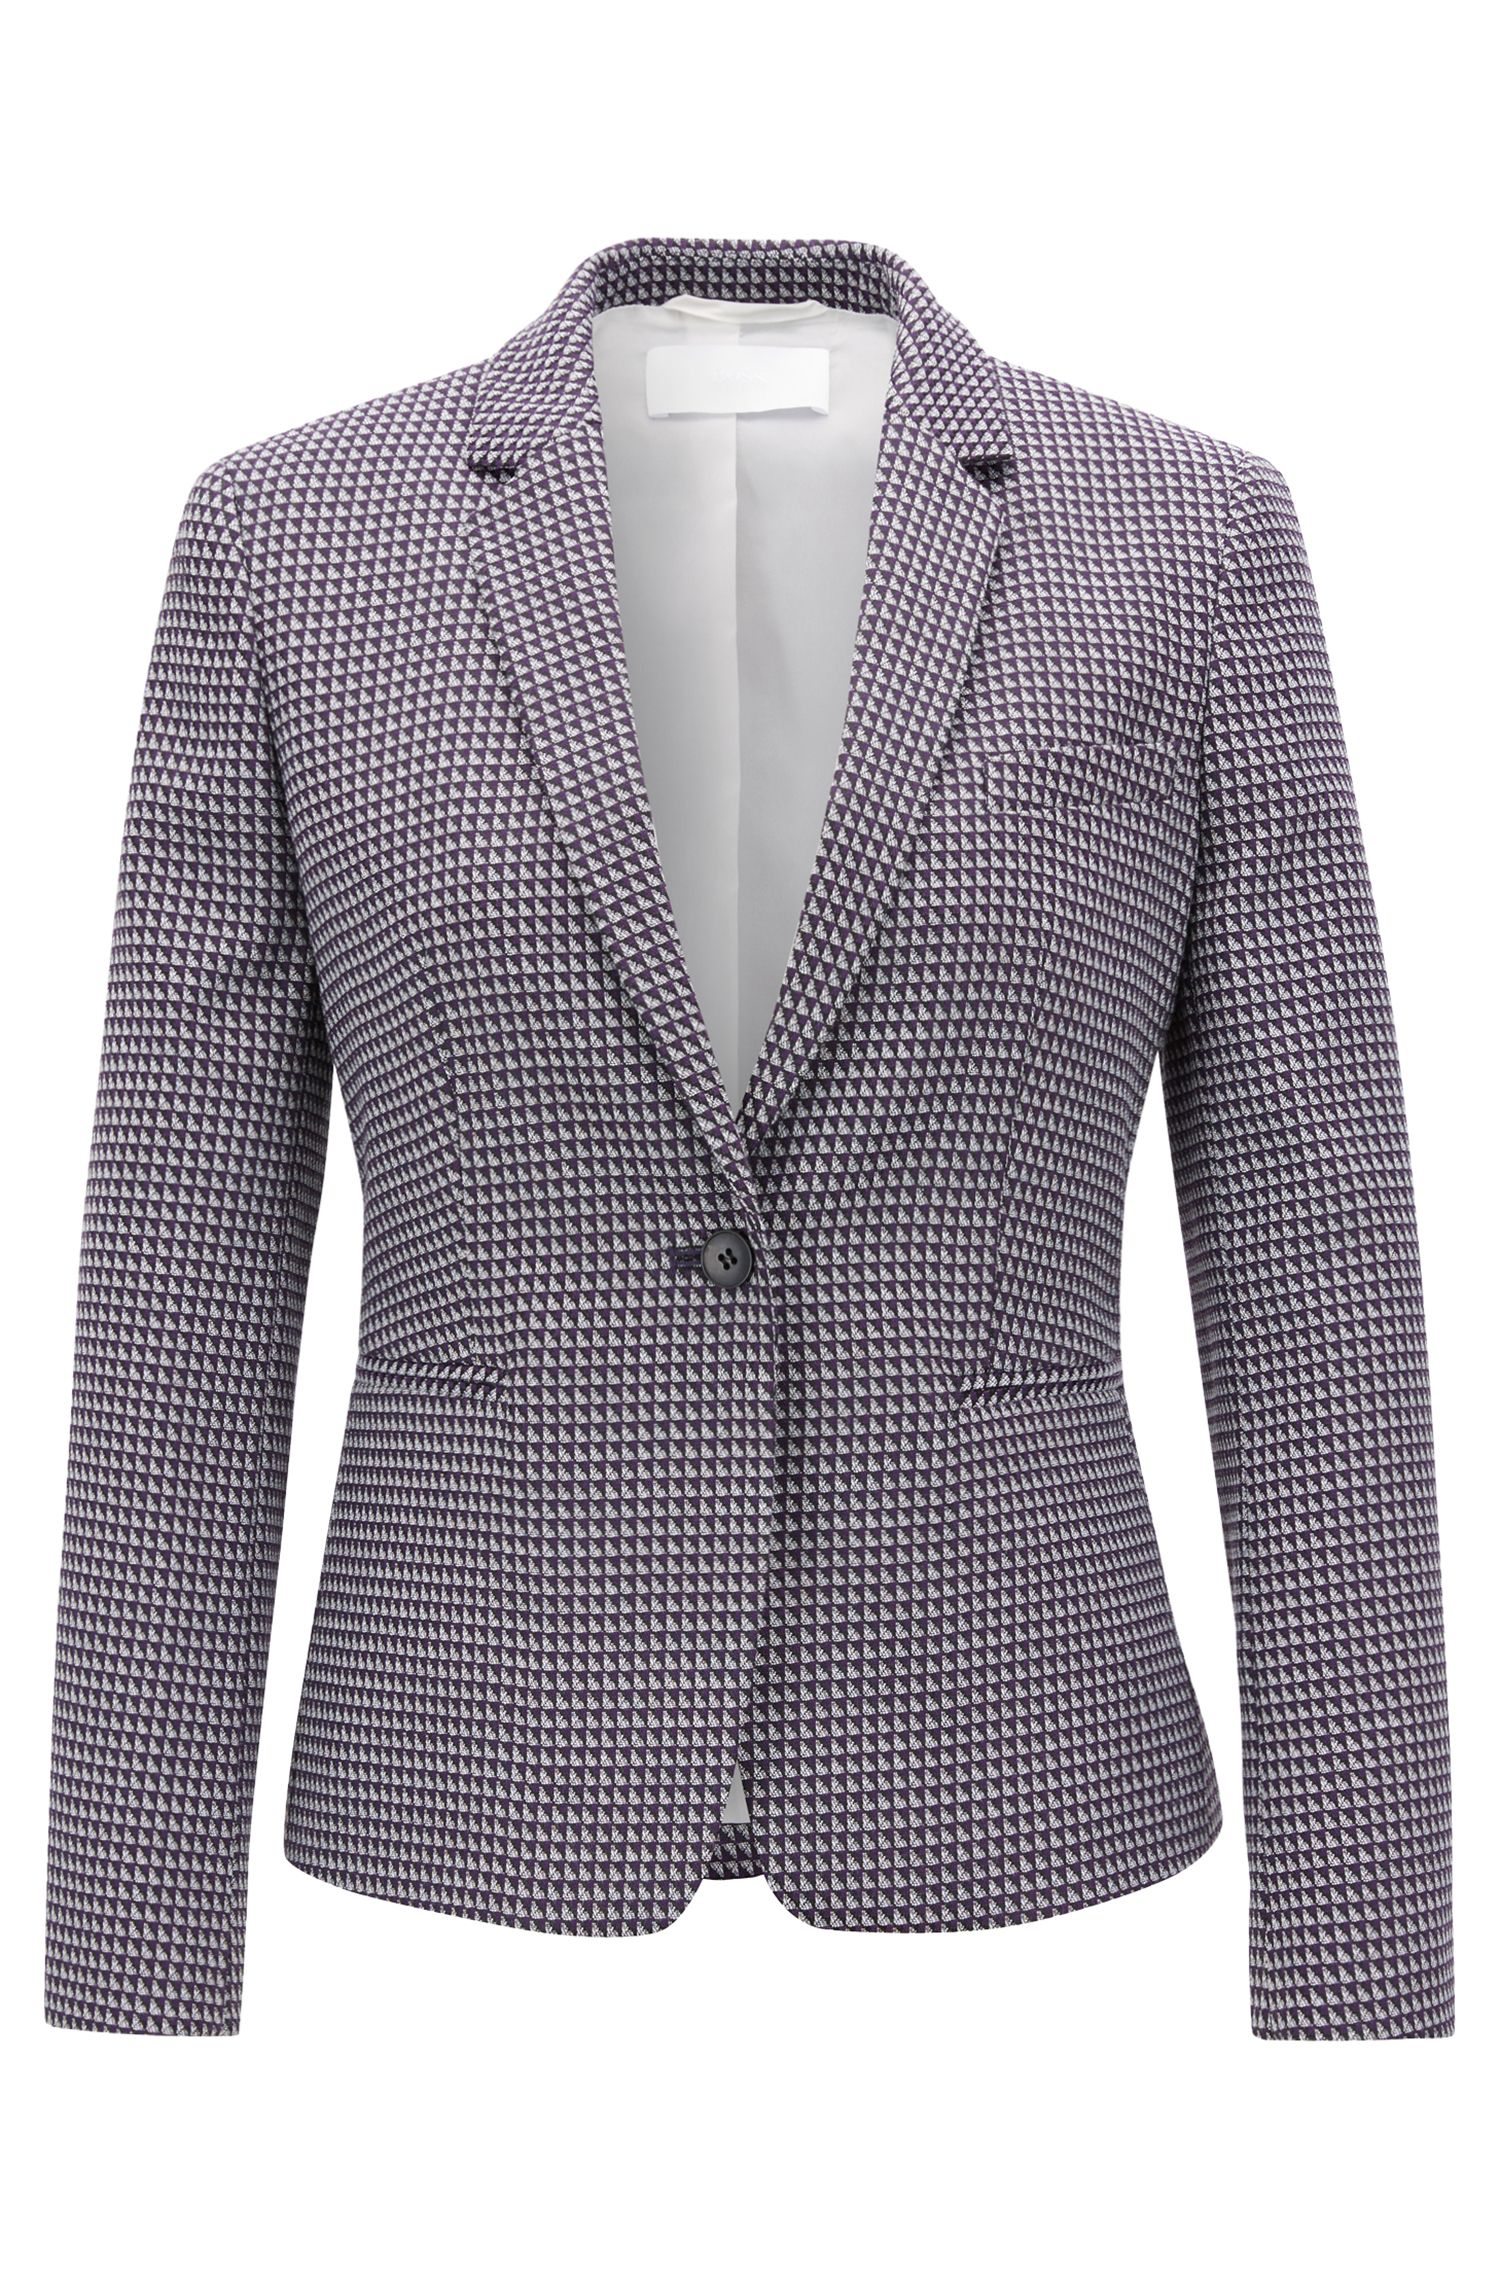 Blazer Regular Fit en jacquard de coton mélangé stretch, Fantaisie